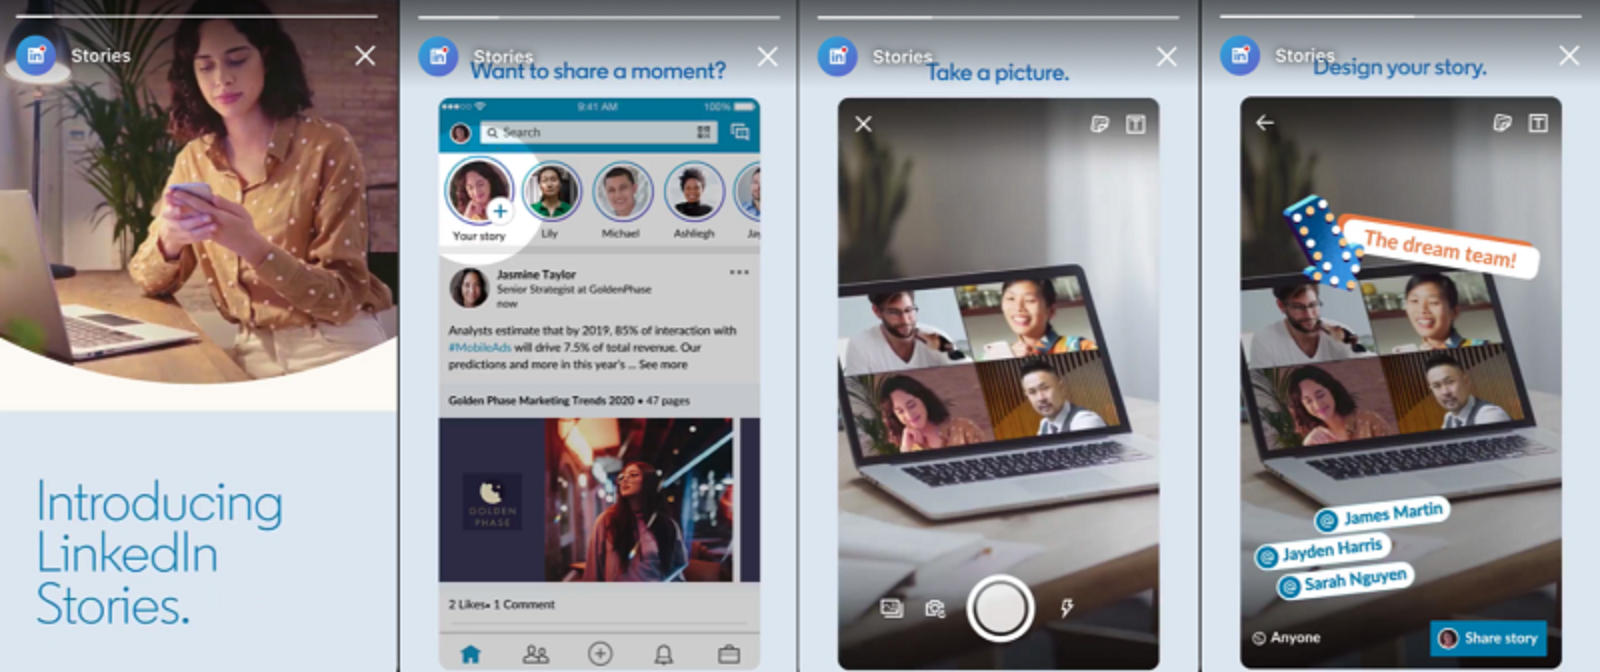 LinkedIn Stories has arrived so here are some tips that won't annoy your audience